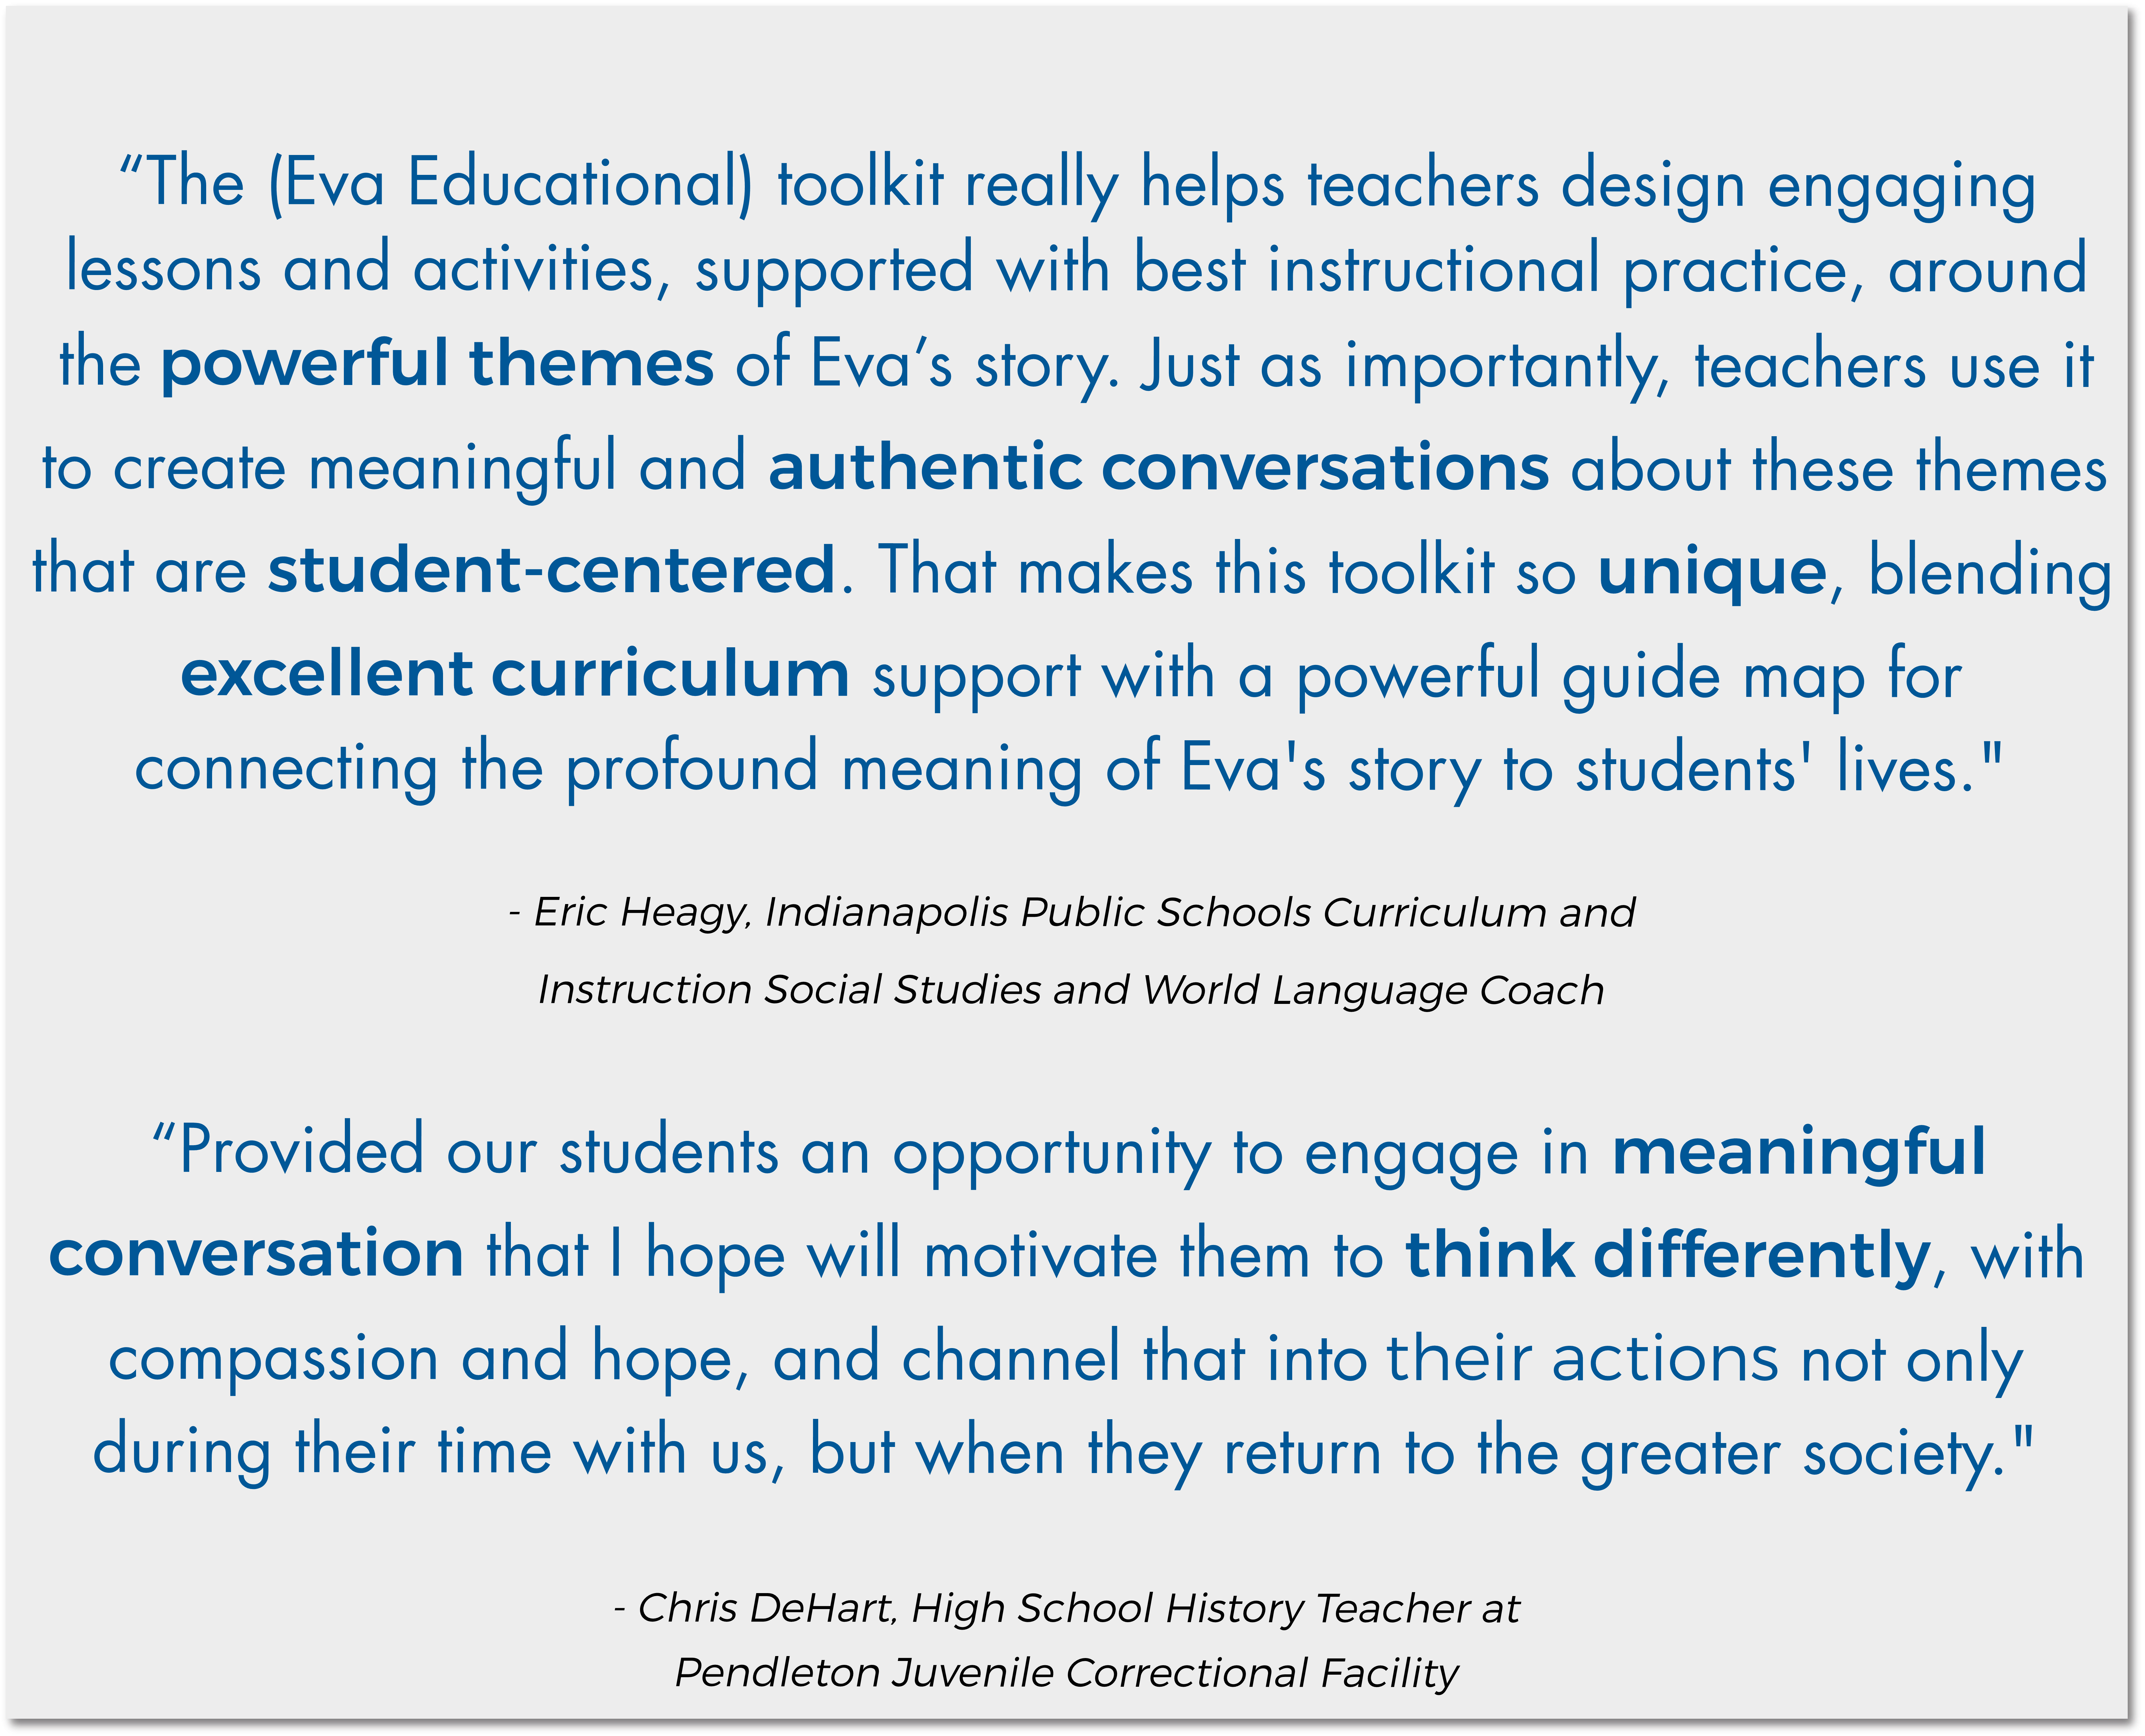 """The (Eva Educational) toolkit really helps teachers design engaging lessons and activities, supported with best instructional practice, around the powerful themes of Eva's story. Just as importantly, teachers use it to create meaningful and authentic conversations about these themes that are student-centered. That makes this toolkit so unique, blending excellent curriculum support with a powerful guide map for connecting the profound meaning of Eva's story of students' lives."" - Eric Heagy, Indianapolis Public Schools Curriculum and Instruction Social Studies and World Language Coach; ""Provided our students an opportunity to engage in meaningful conversation that I hope will motivate them to think differently, with compassion and hope, and channel that into their actions not only during their time with us, but when they return to the greater society."" - Chris DeHart High School History Teacher and Pendleton Juvenile Correctional Facilityt"